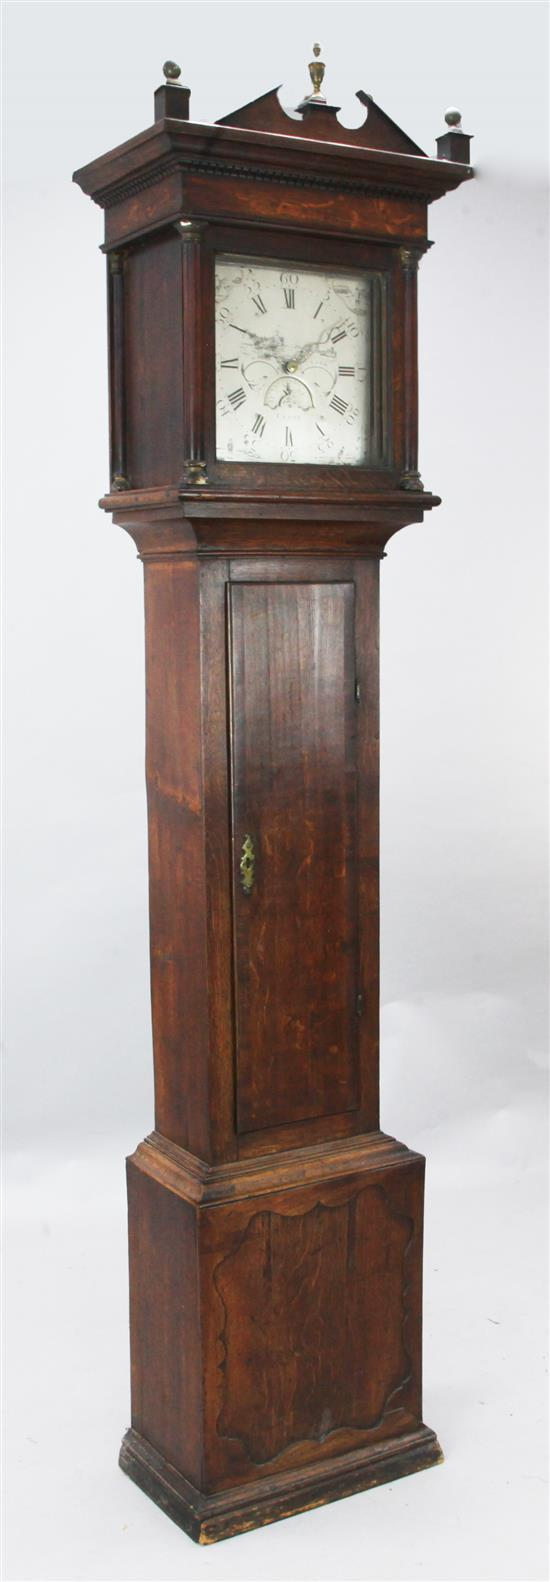 William Clark of Cerne. A George III oak thirty hour longcase clock, 7ft